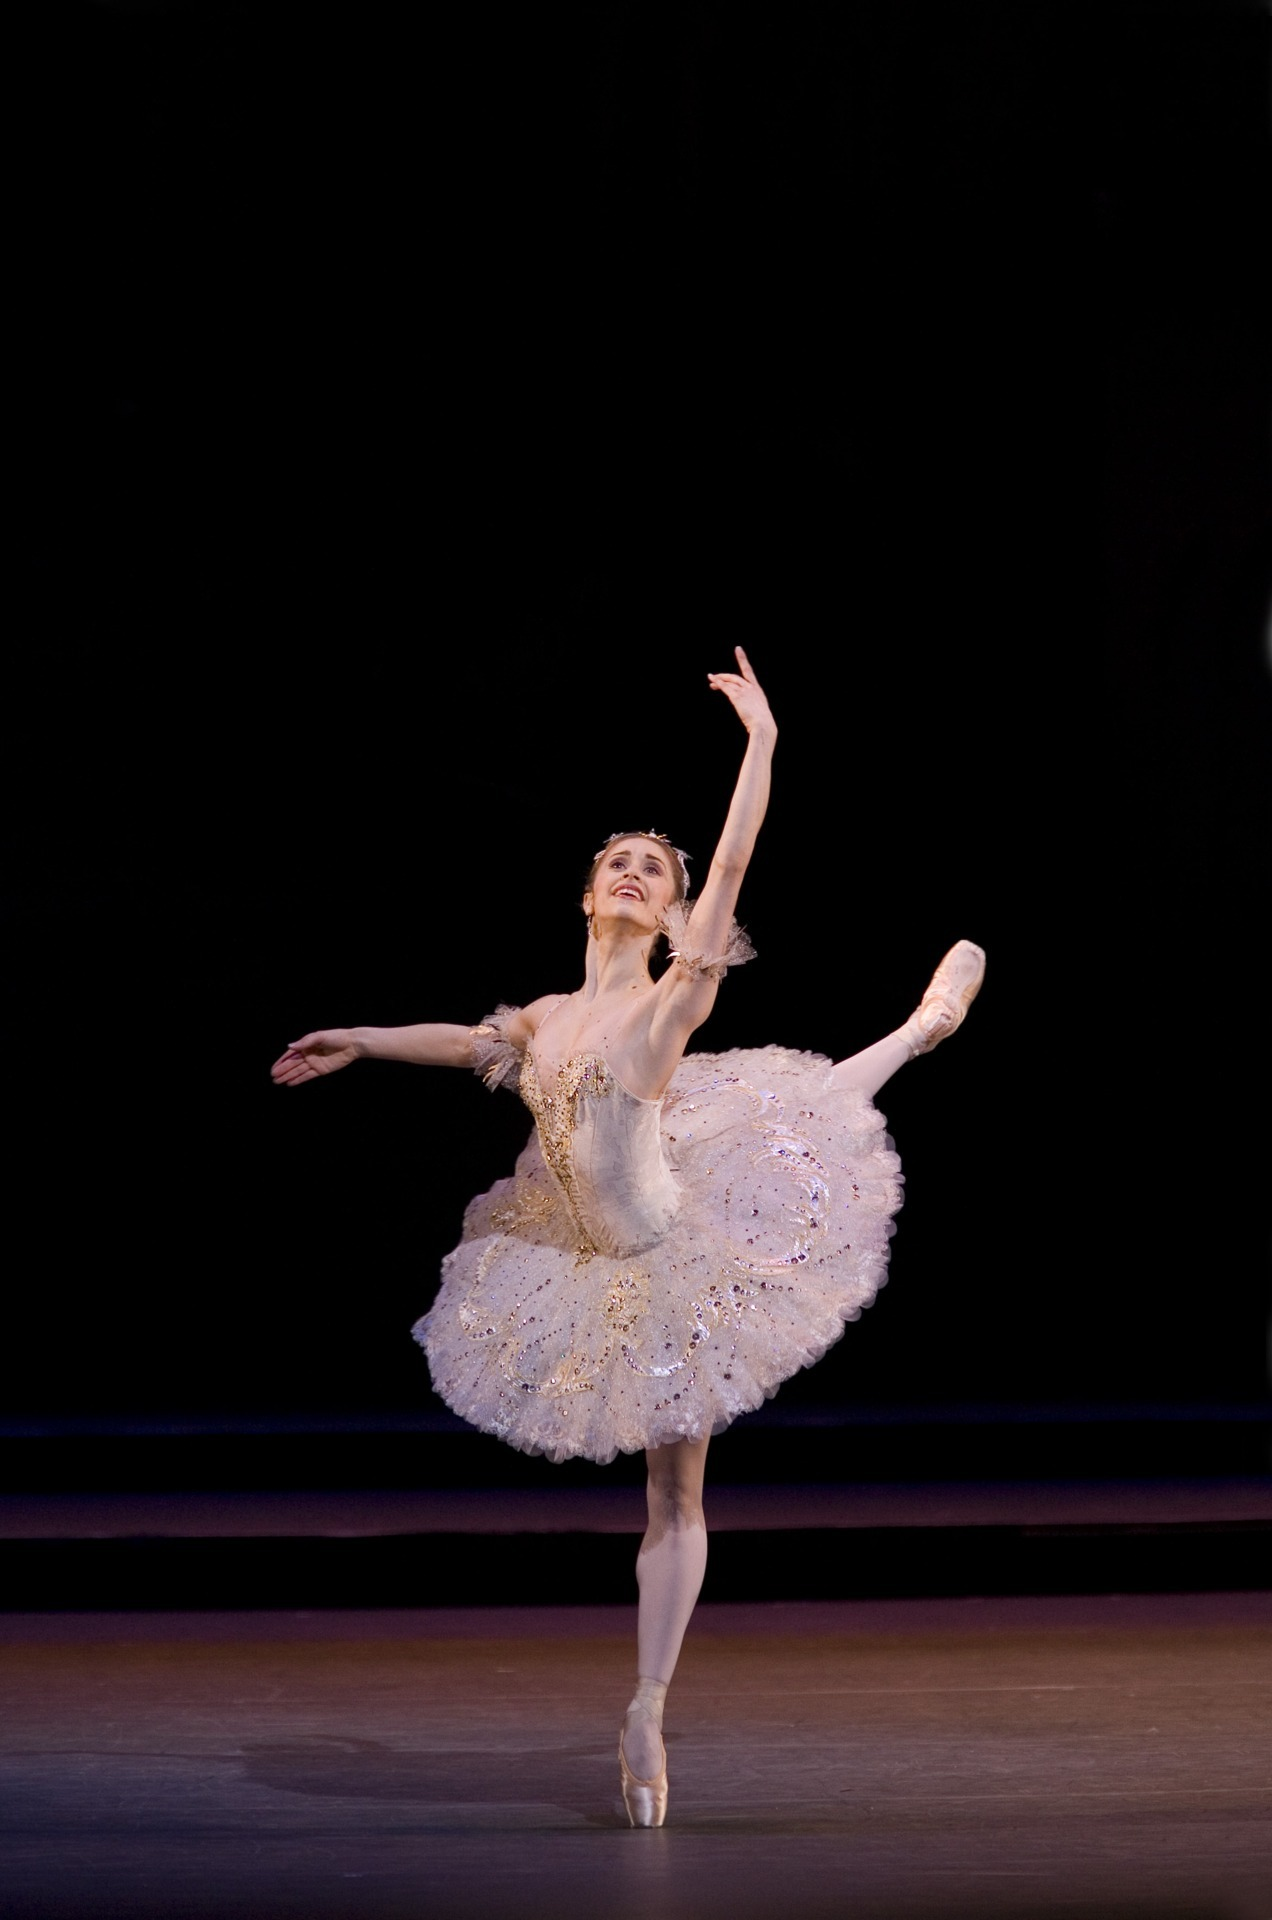 theballetblog:  Marianela Nunez as Aurora in Sleeping Beauty